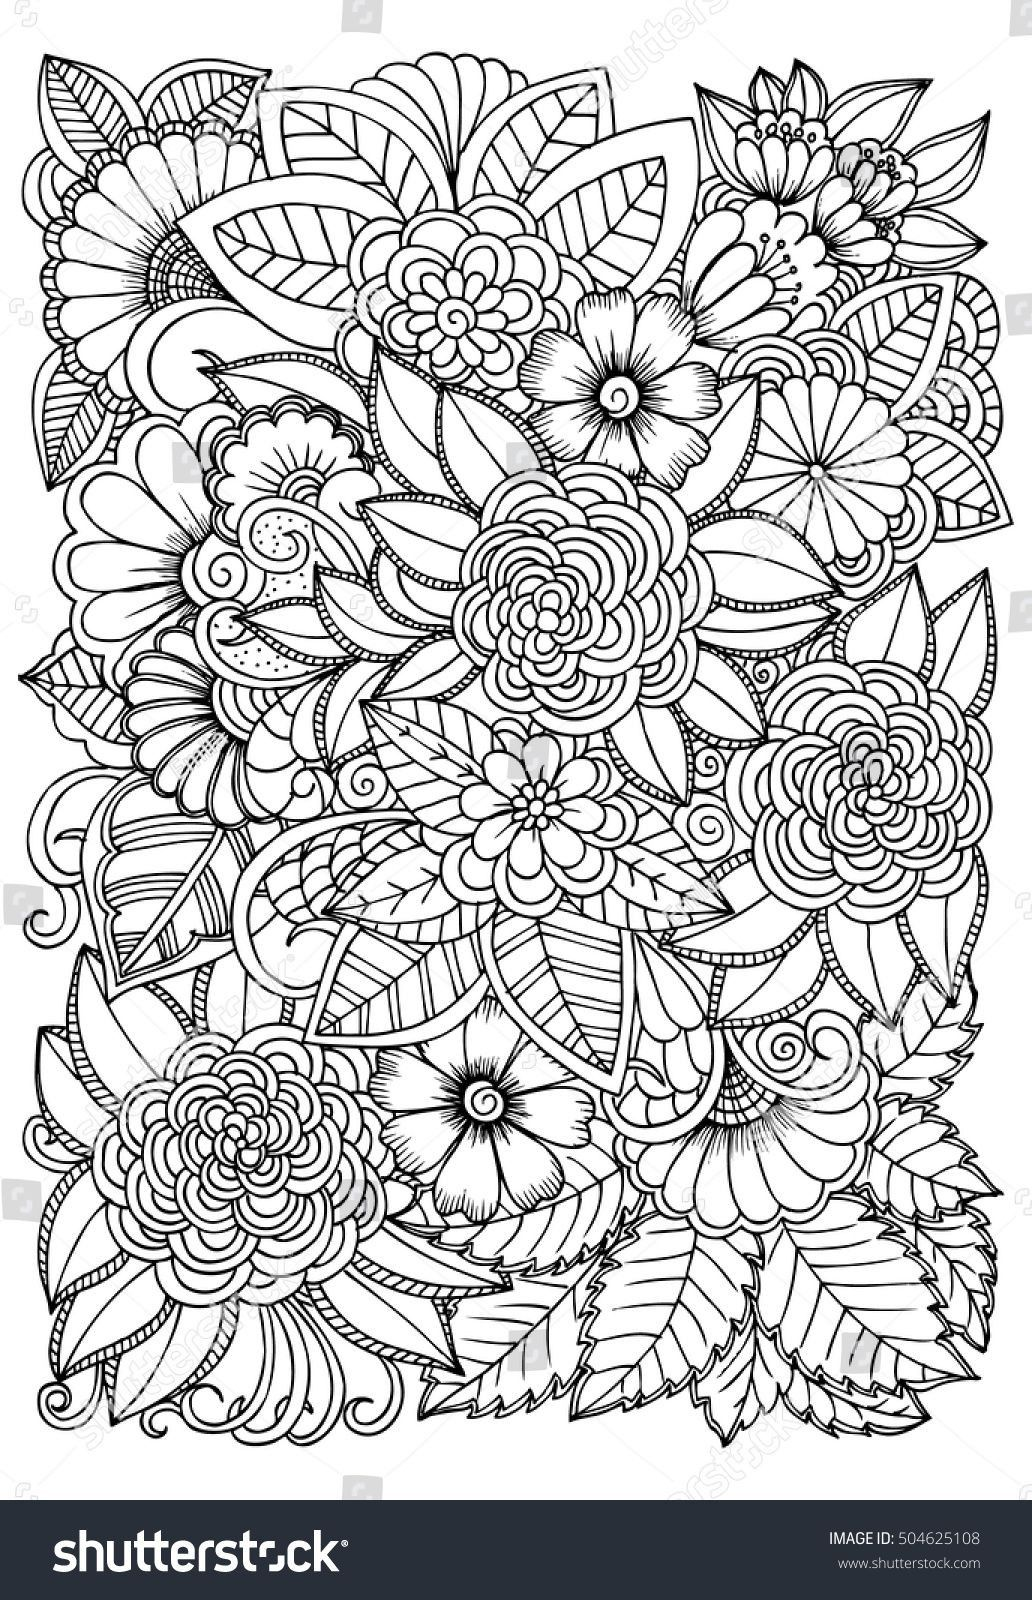 Pin On Colouring Pictures